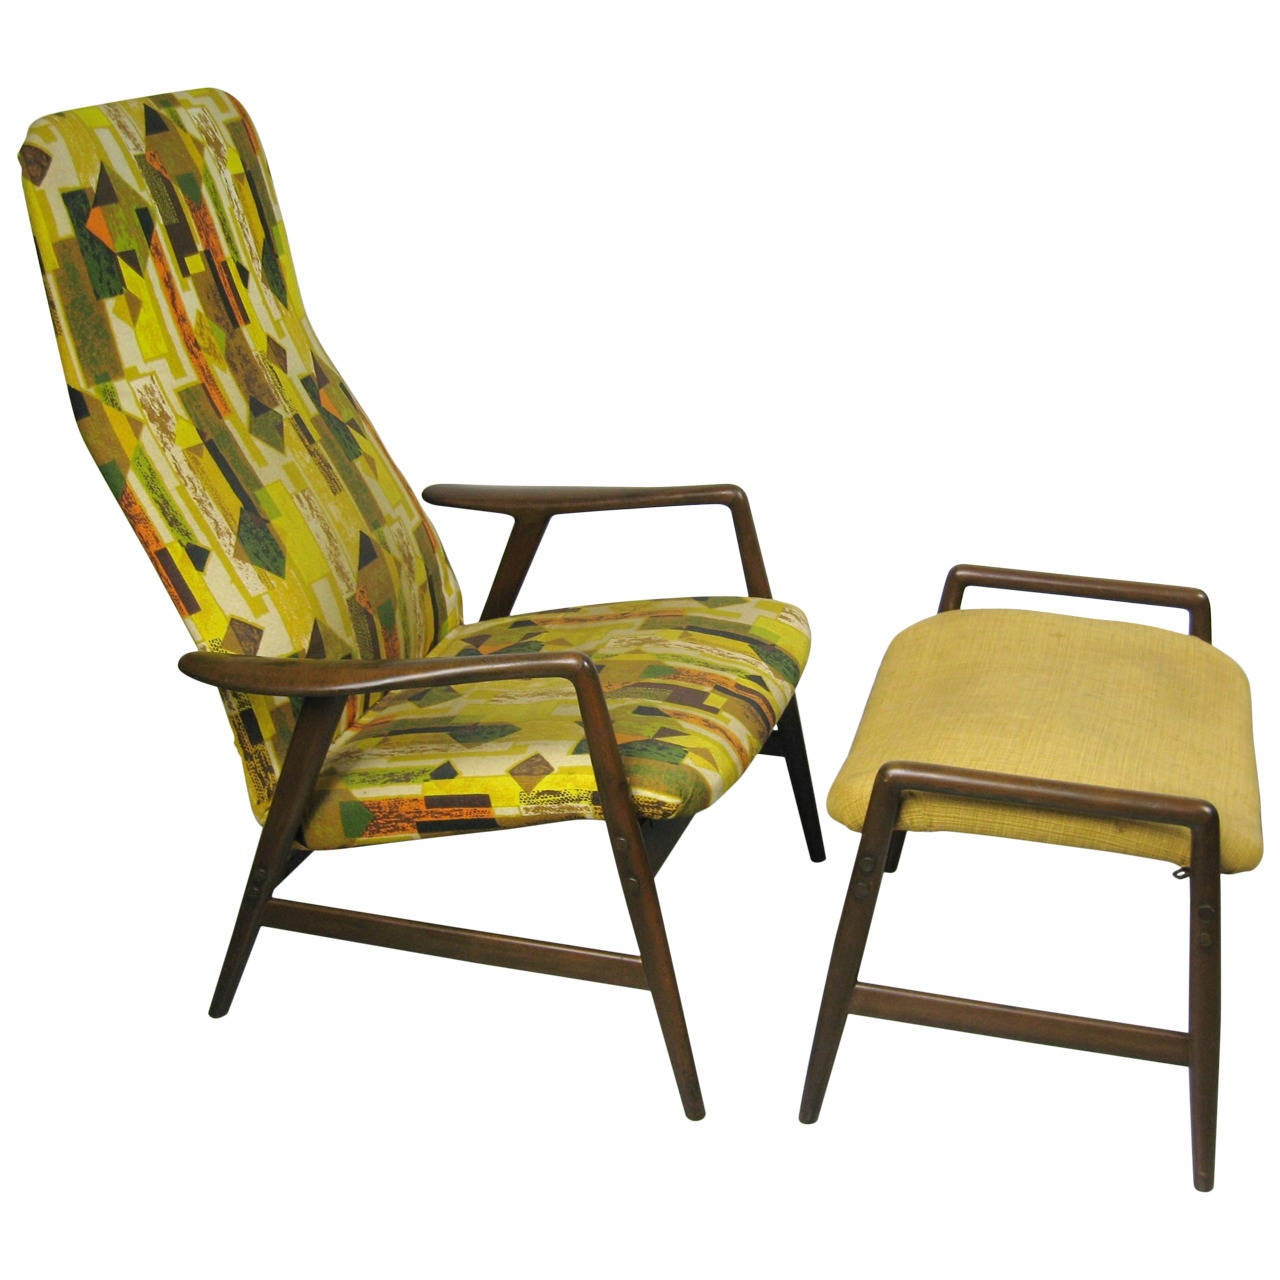 Midcentury Folke Ohlsson DUX Recling Chair with Ottoman